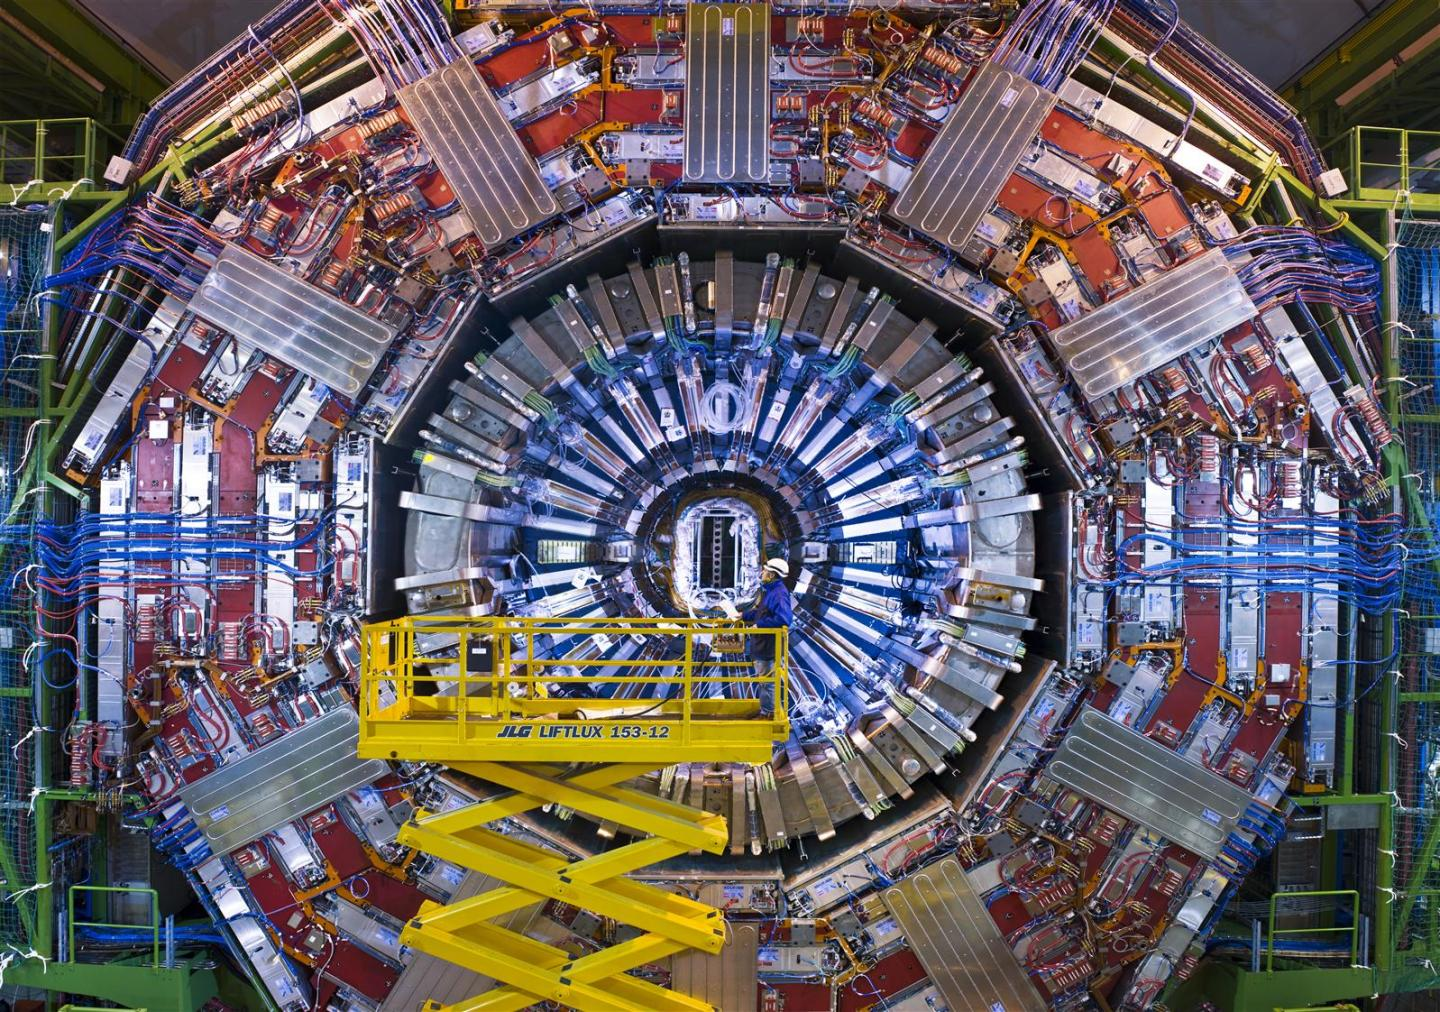 Here is everything you need to know about CERN